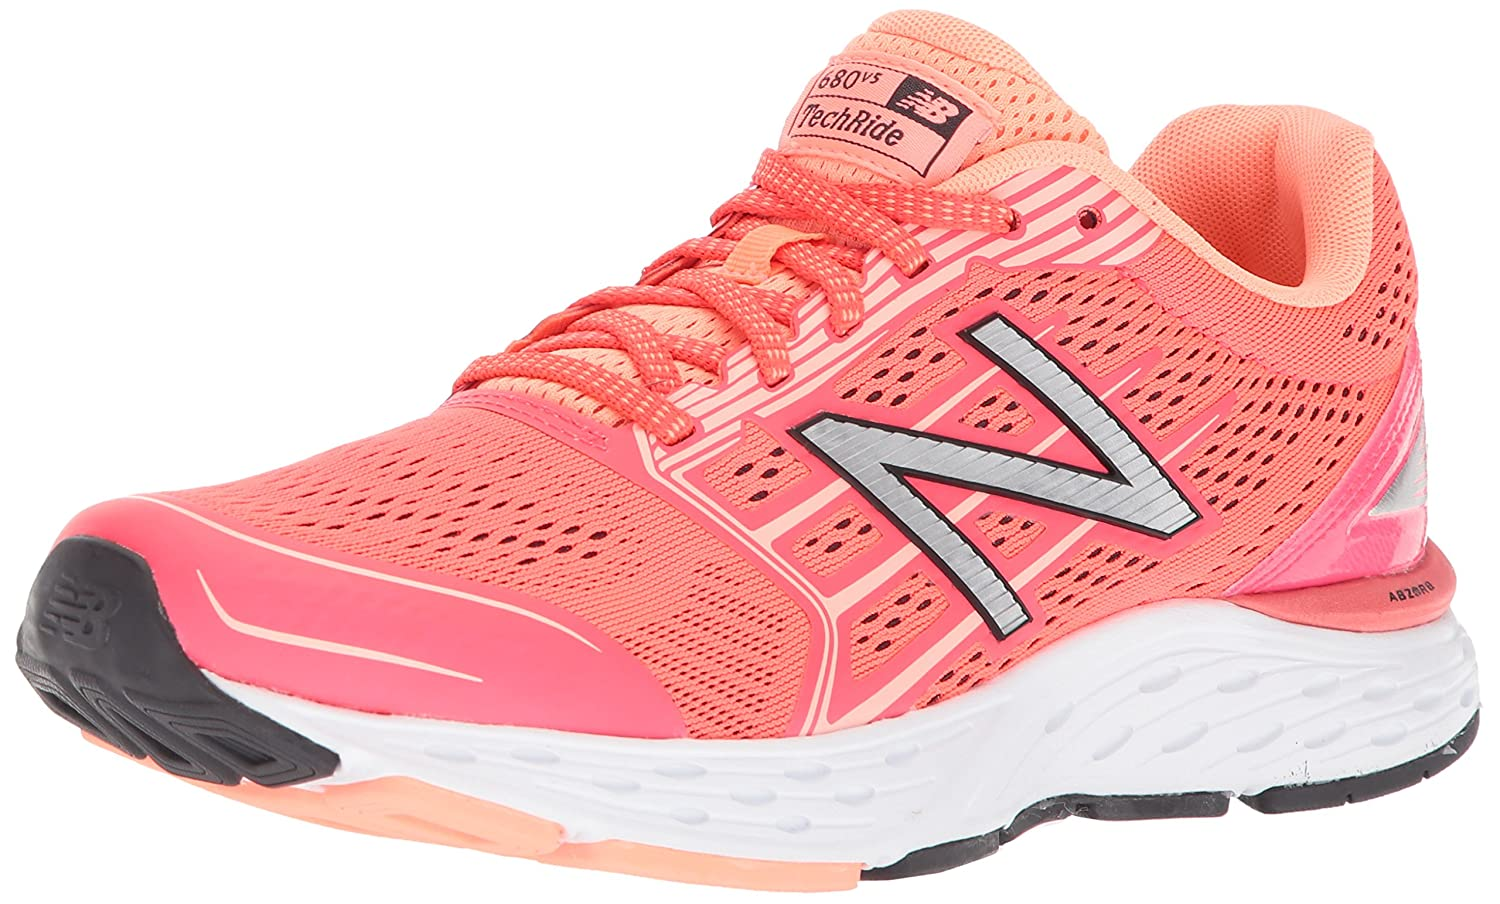 New Balance Women's 680v5 Cushioning Running Shoe B06XSDMZC4 8.5 B(M) US|Coral